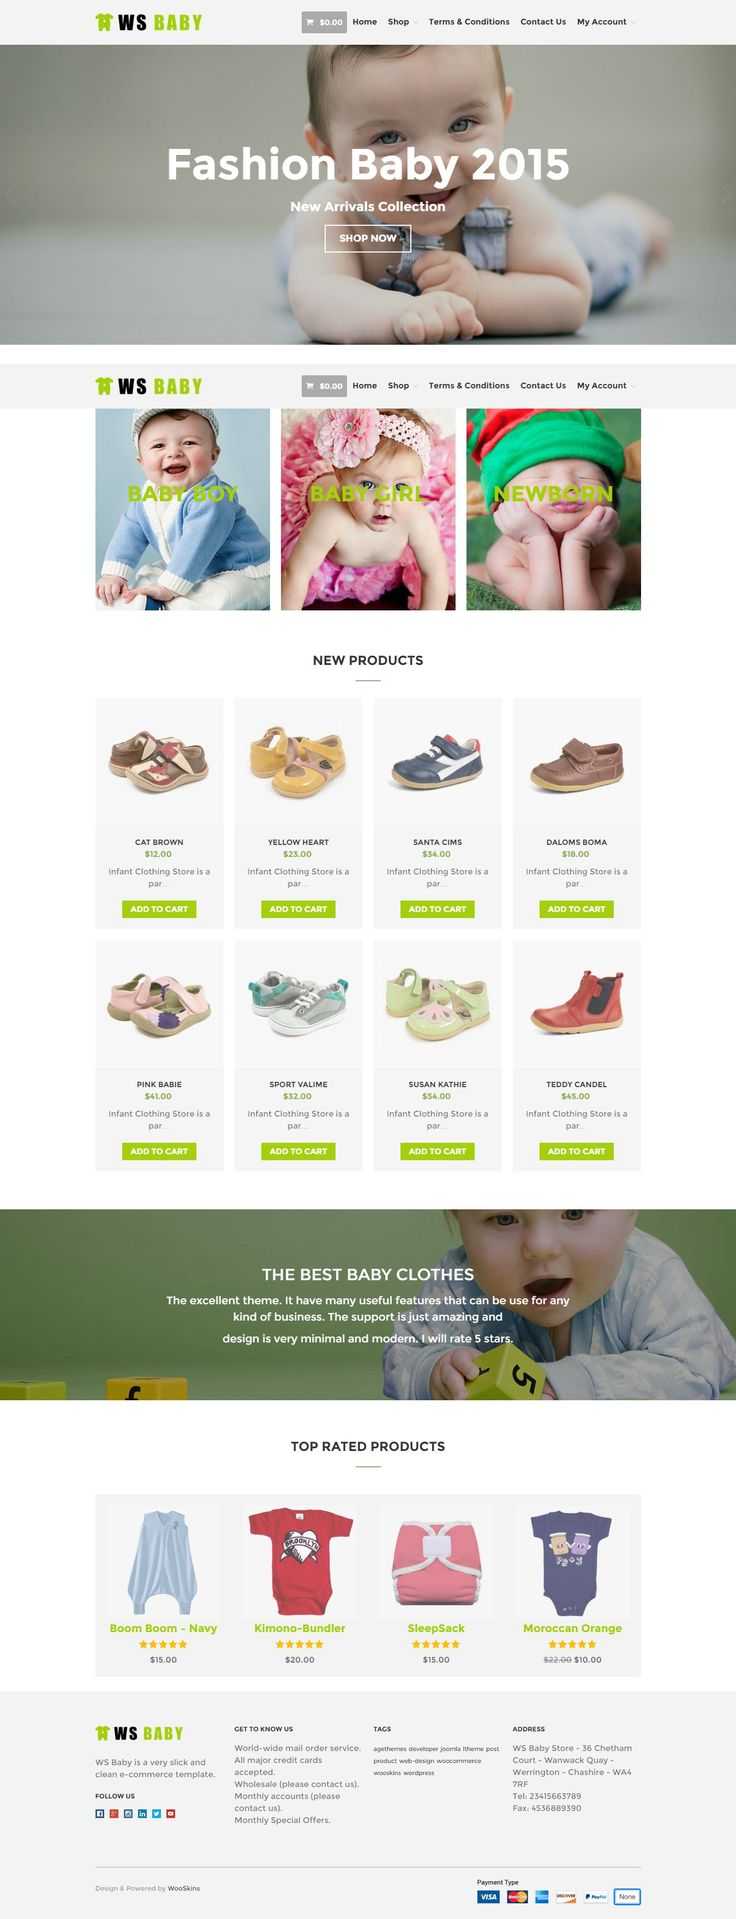 WS Baby is Free WooCommerce WordPress theme tailored for kids or baby store websites. The theme comes with a clean and lovely design using soft-colors, which makes it suitable for setting up any child-related store #website. This is beautiful template to showcase the #babystores, provide detailed information about its styles and prices.